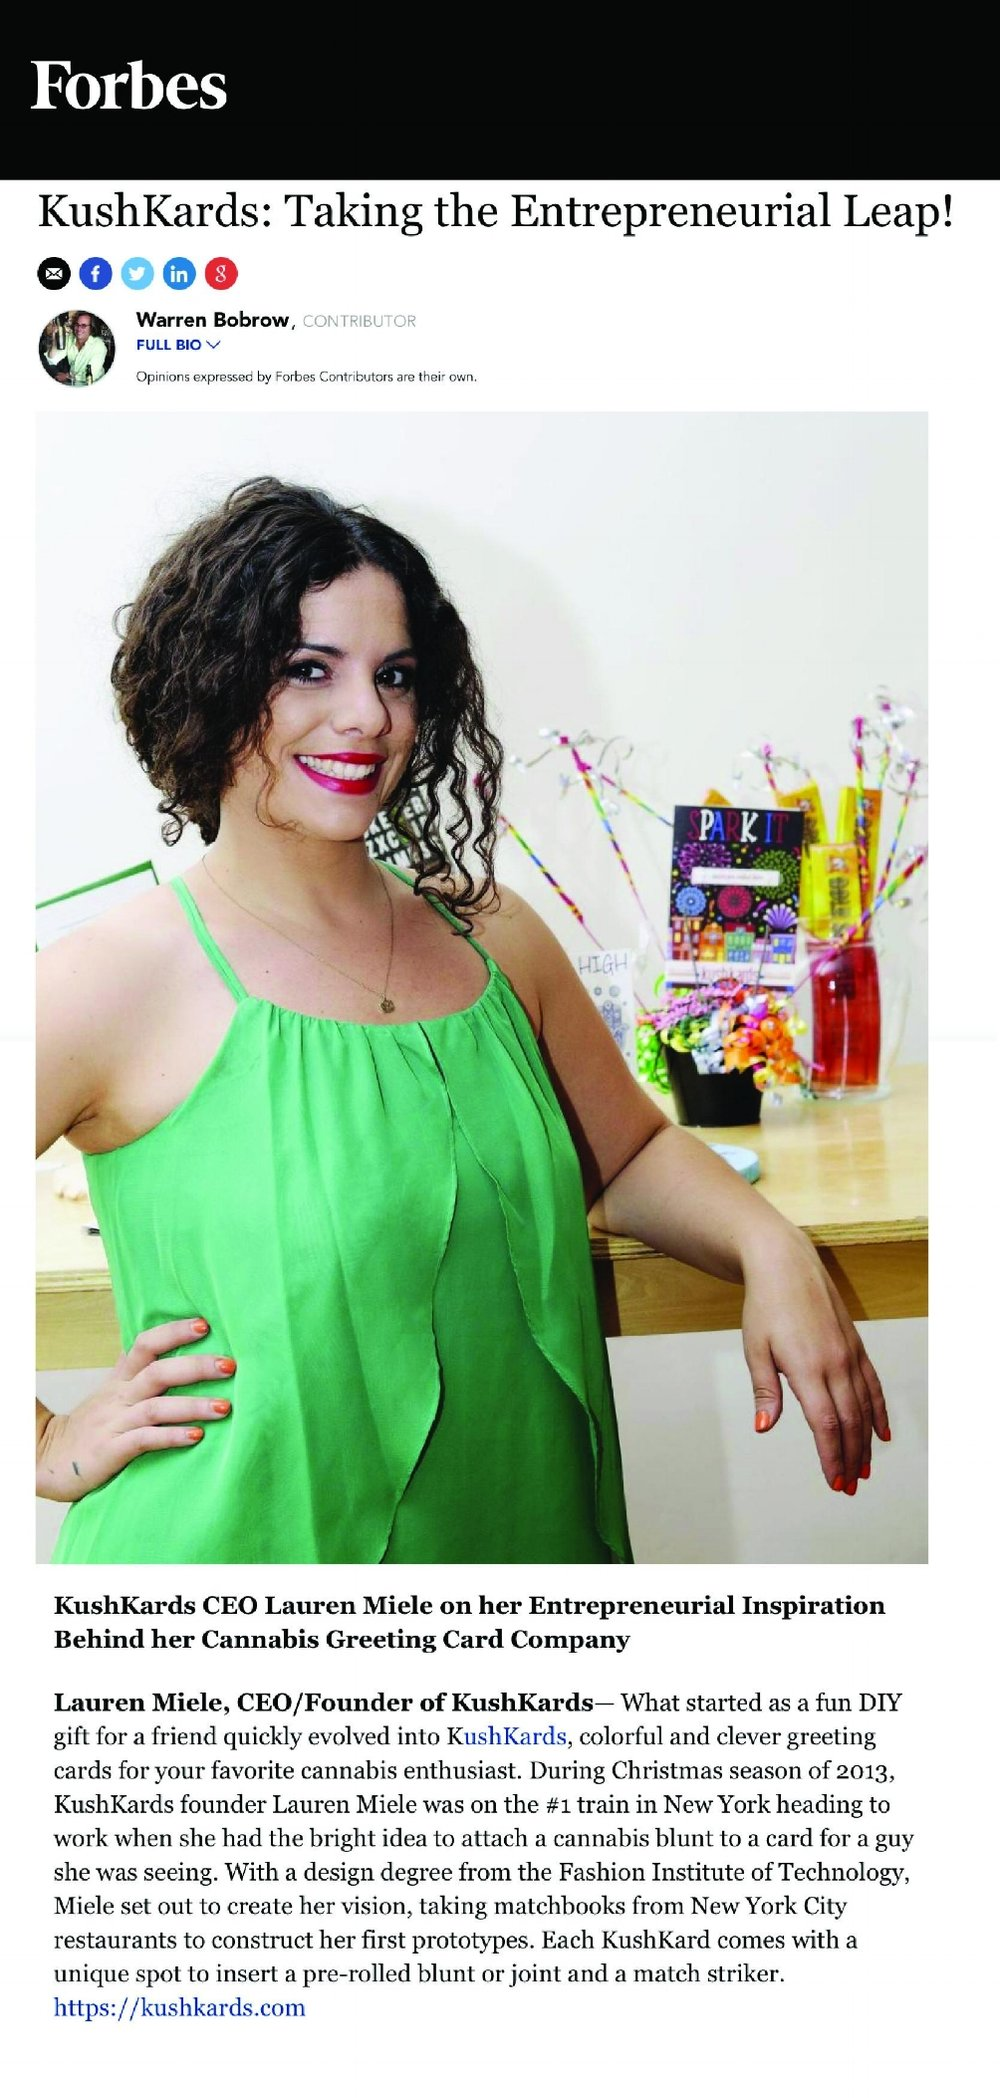 """Forbes:  KushKards CEO Lauren Miele on her Entrepreneurial Inspiration Behind her Cannabis Greeting Card Company !  """" When I cook up a new idea for  KushKards my eyes well up with joy. My favorite part about the design cycle is seeing customer reactions and feedback. I love to create something unique for KushKard connoisseurs— whether it's gift to give their stoner sweetheart, a pick-me-up for friends feeling under the weather, or a celebratory note for a special occasion. I get high watching people's eyes light up when they're giving and receiving, especially when it's a card from the KushKards collection."""""""